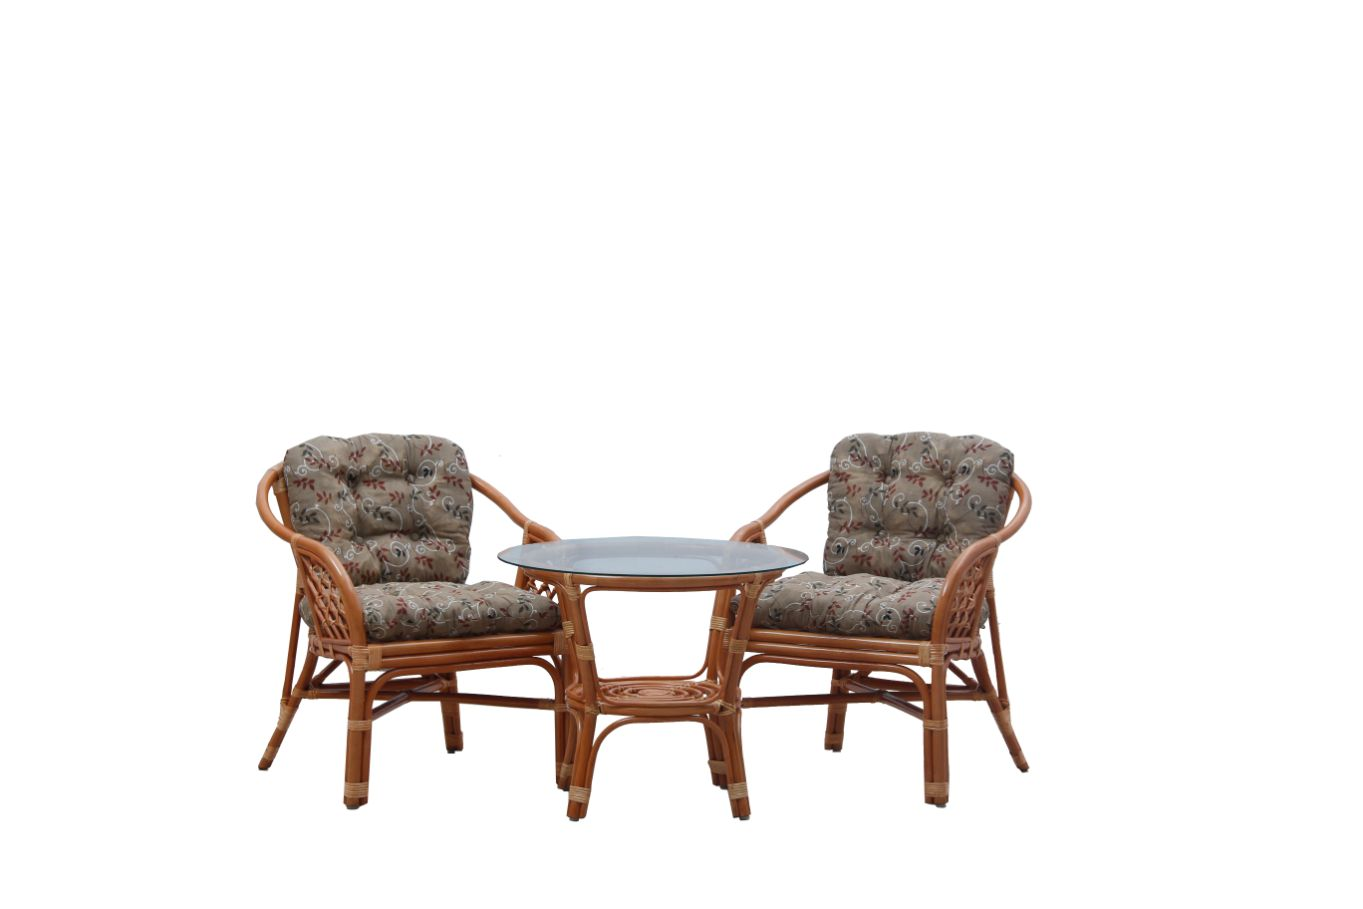 Rattan Furniture 79